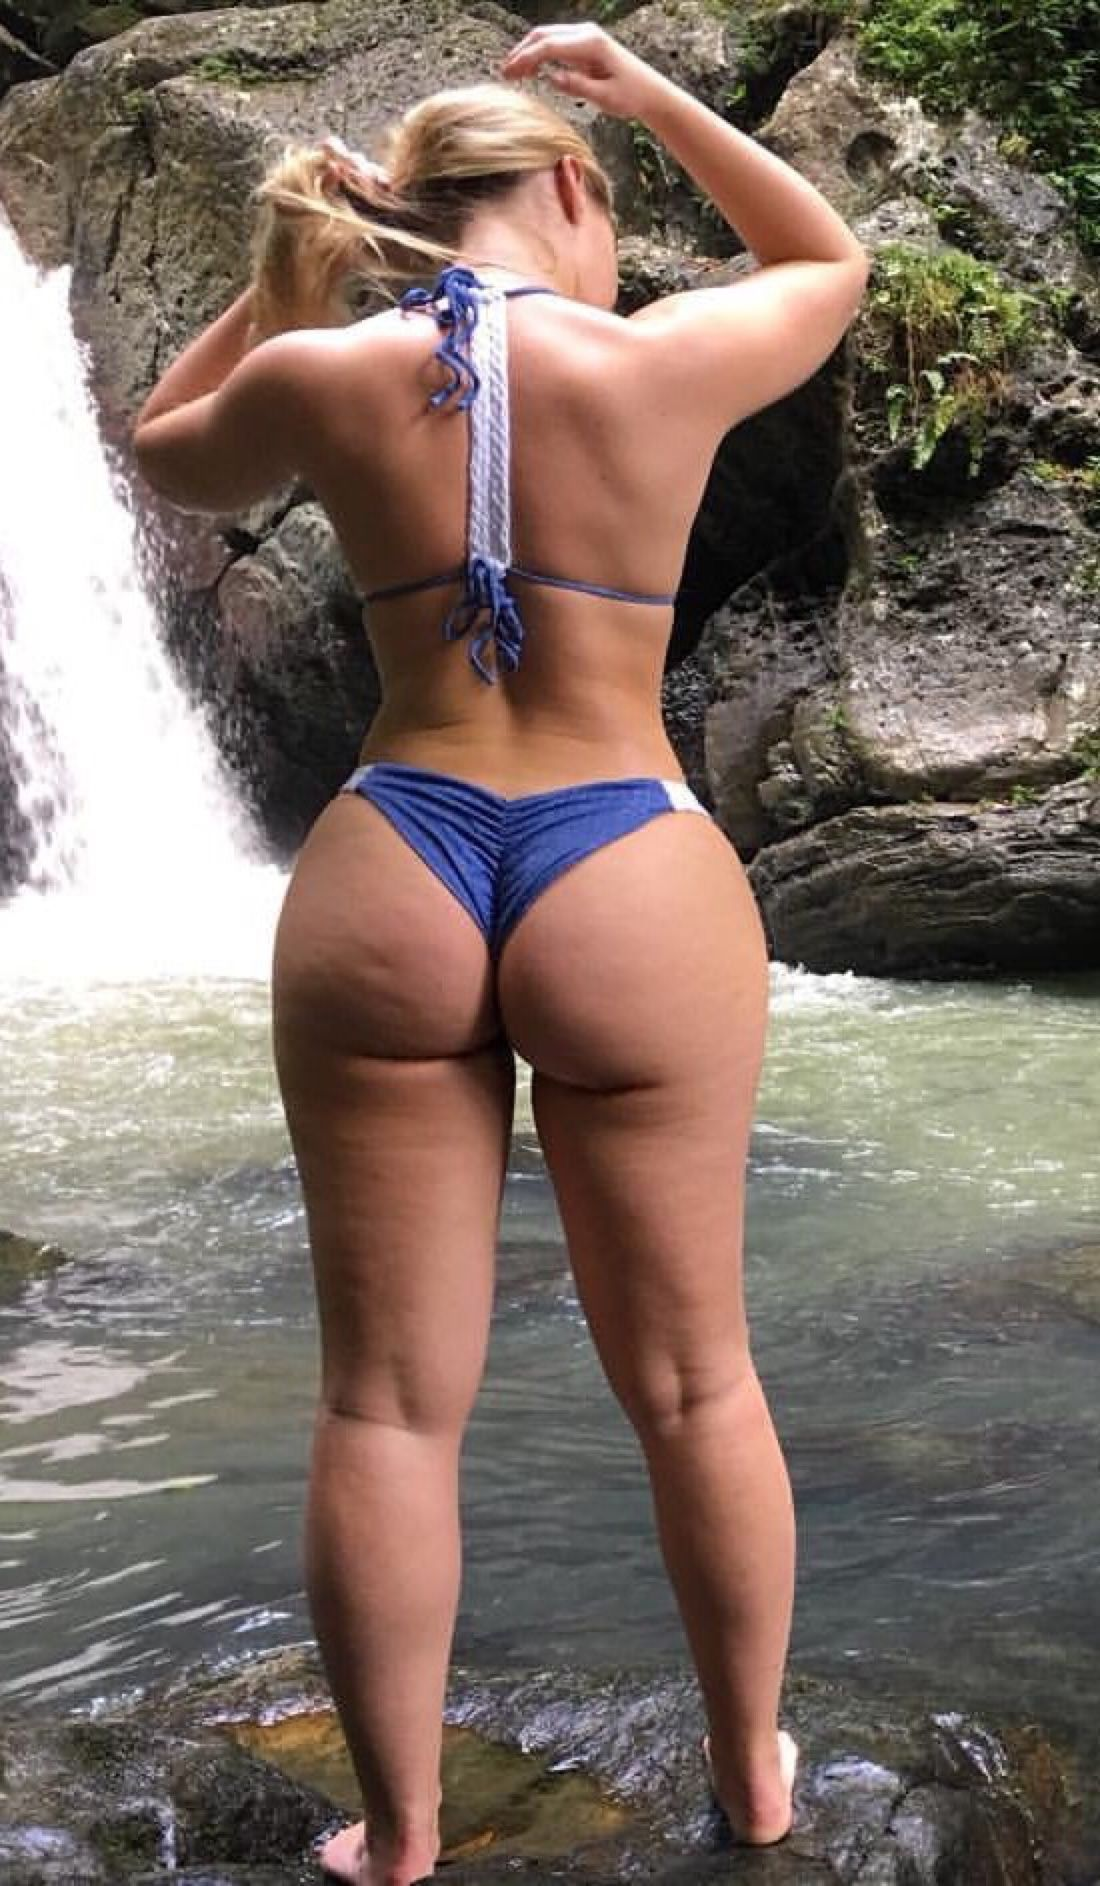 hot porn curvy girl and big booty : foto | best curvy women